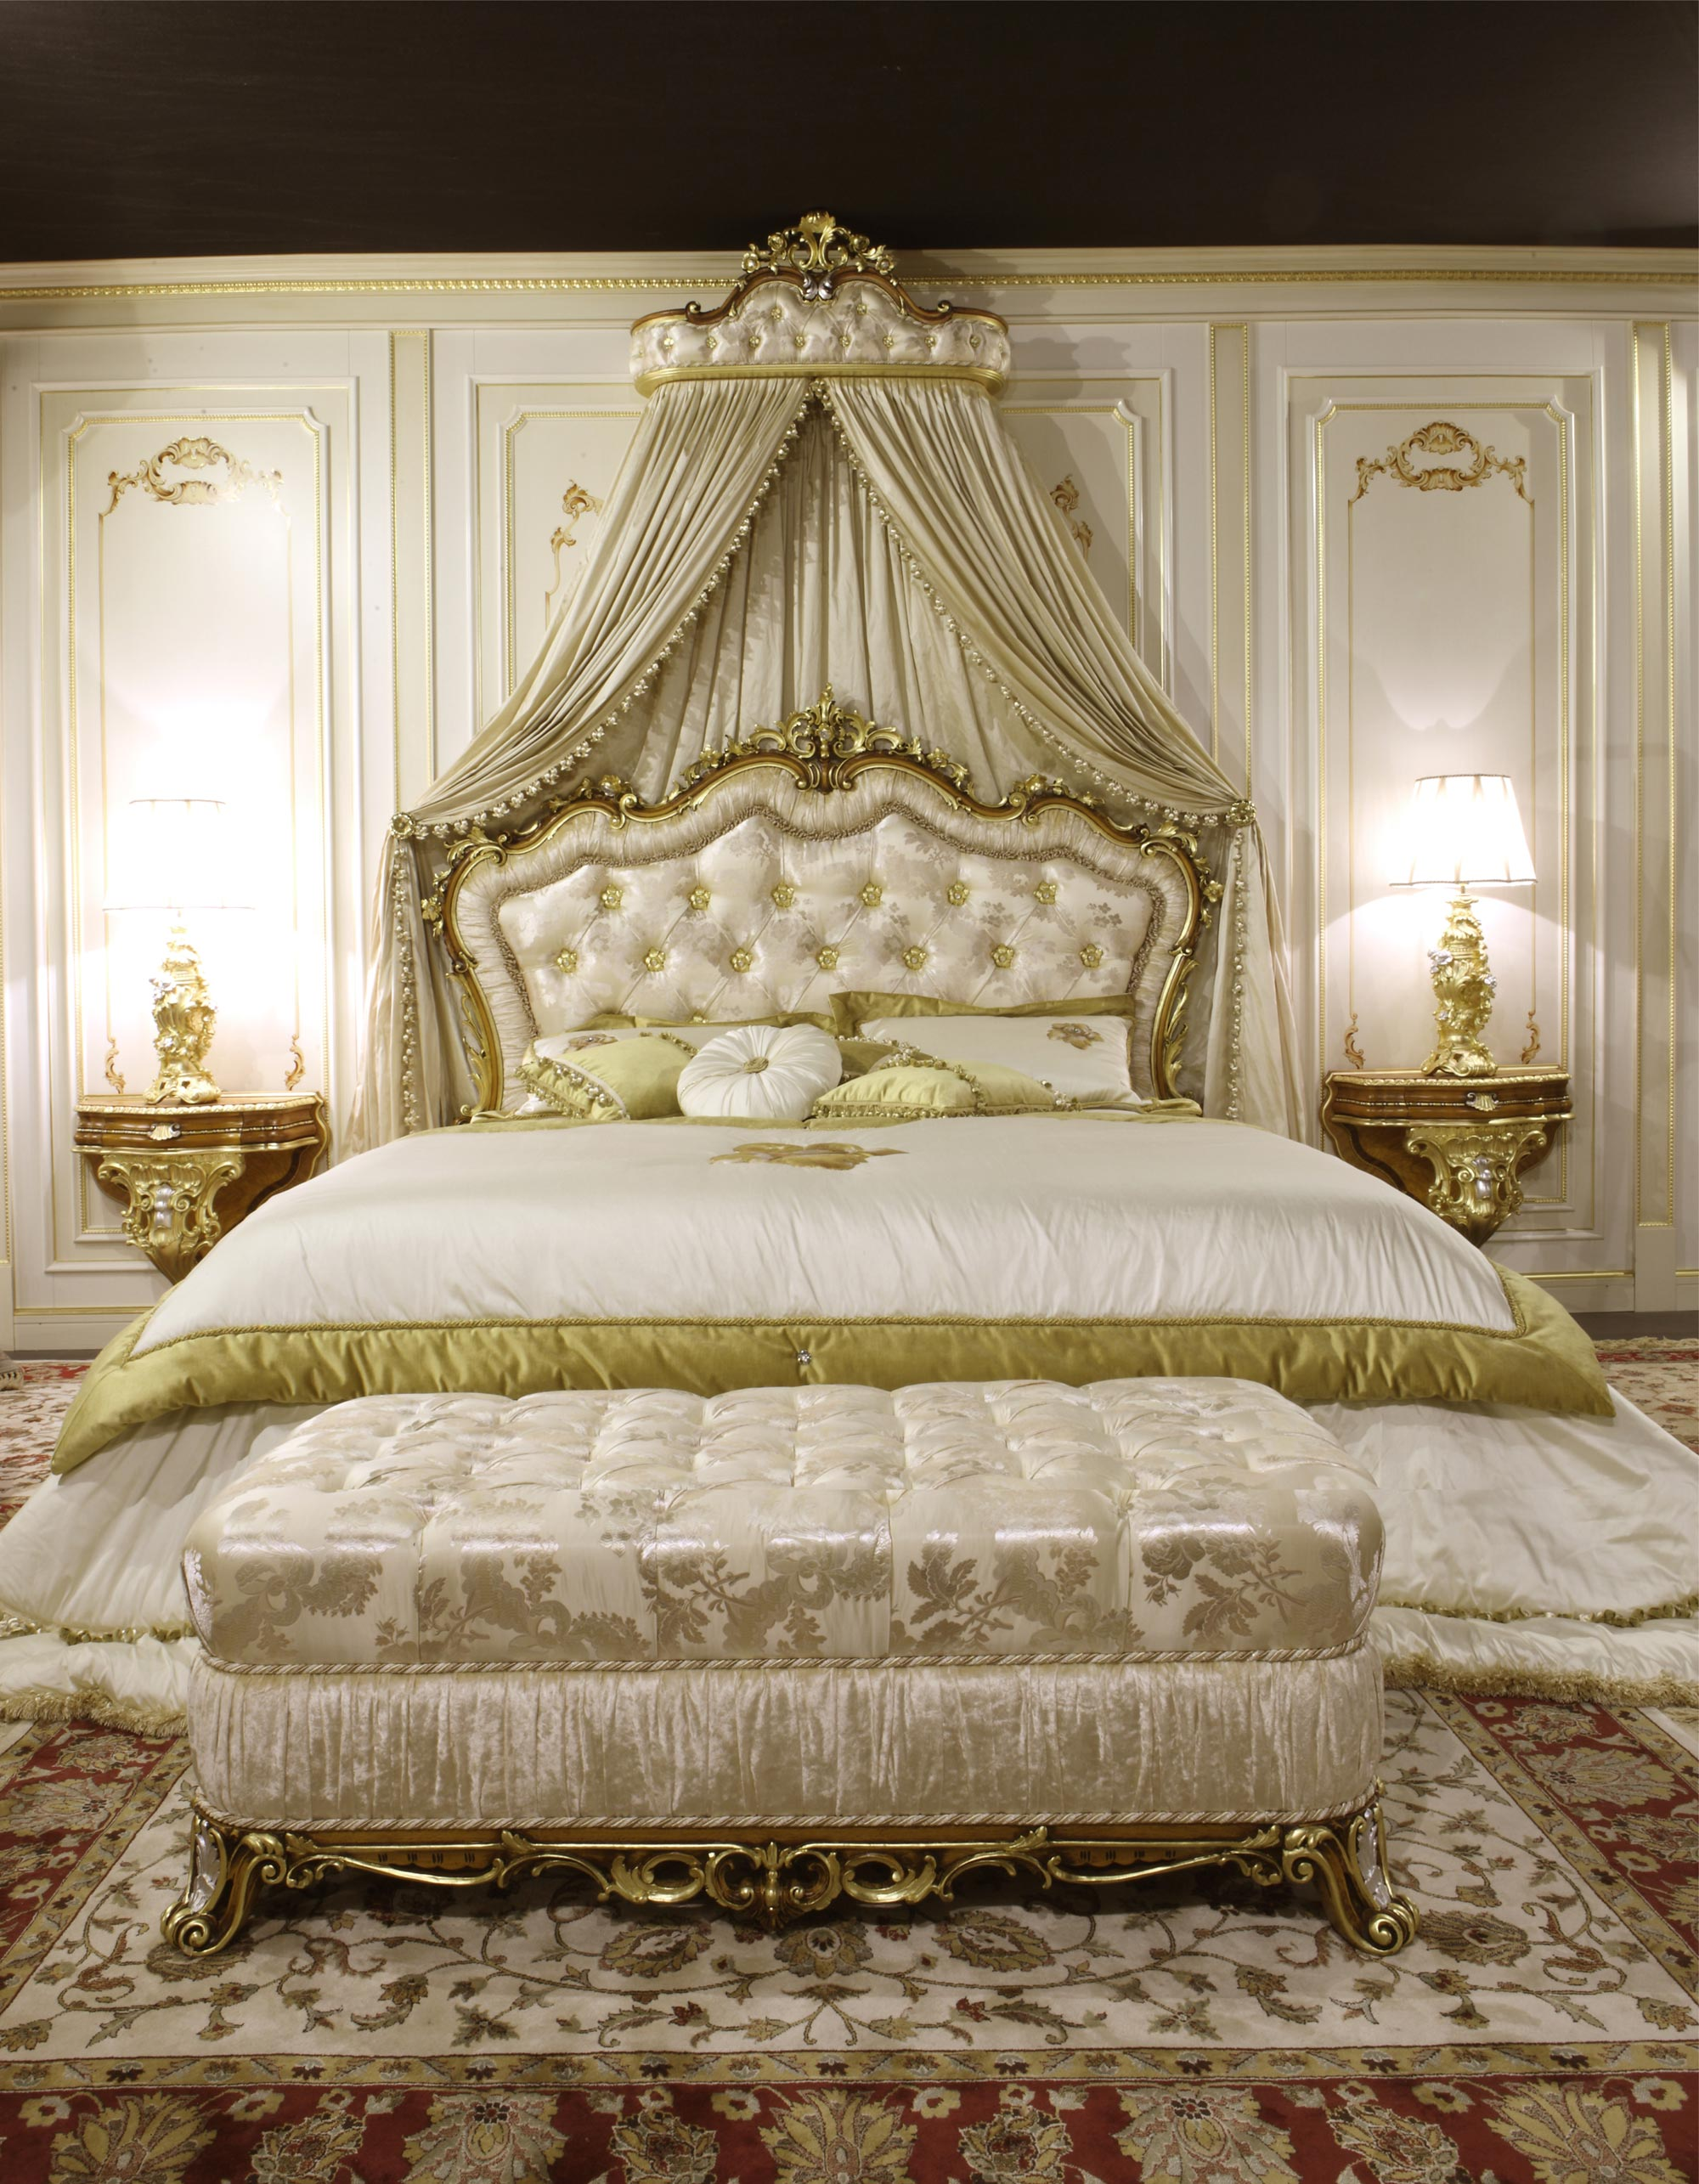 Classic Bench And Baroque Bed Art 2013 Vimercati